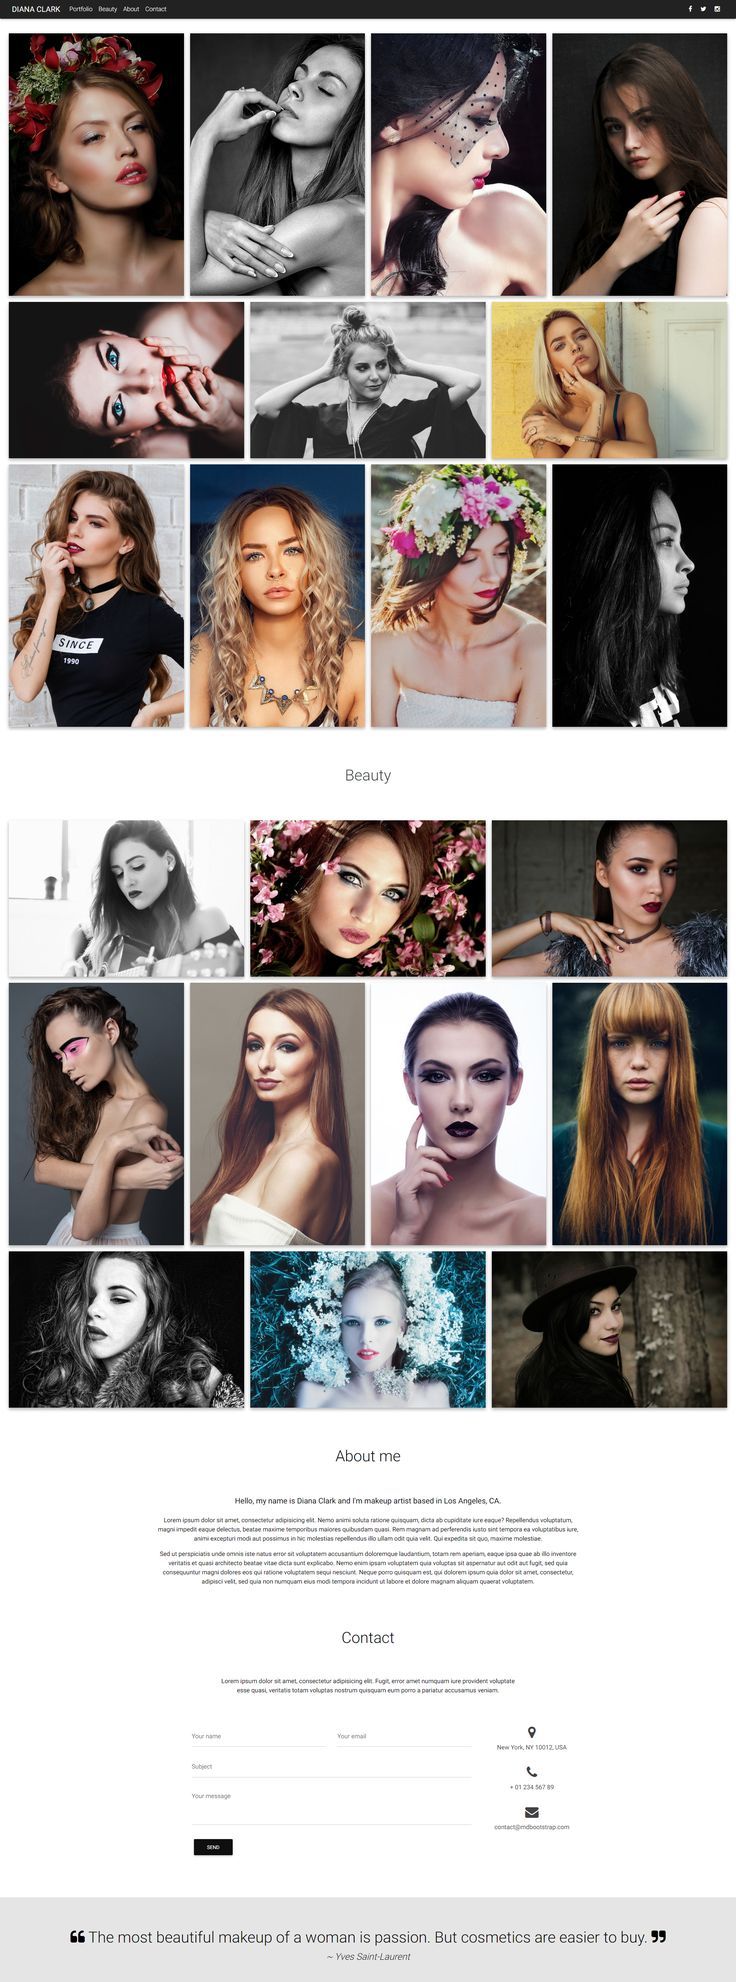 Makeup Artist Portfolio template created in Material Design spirit.